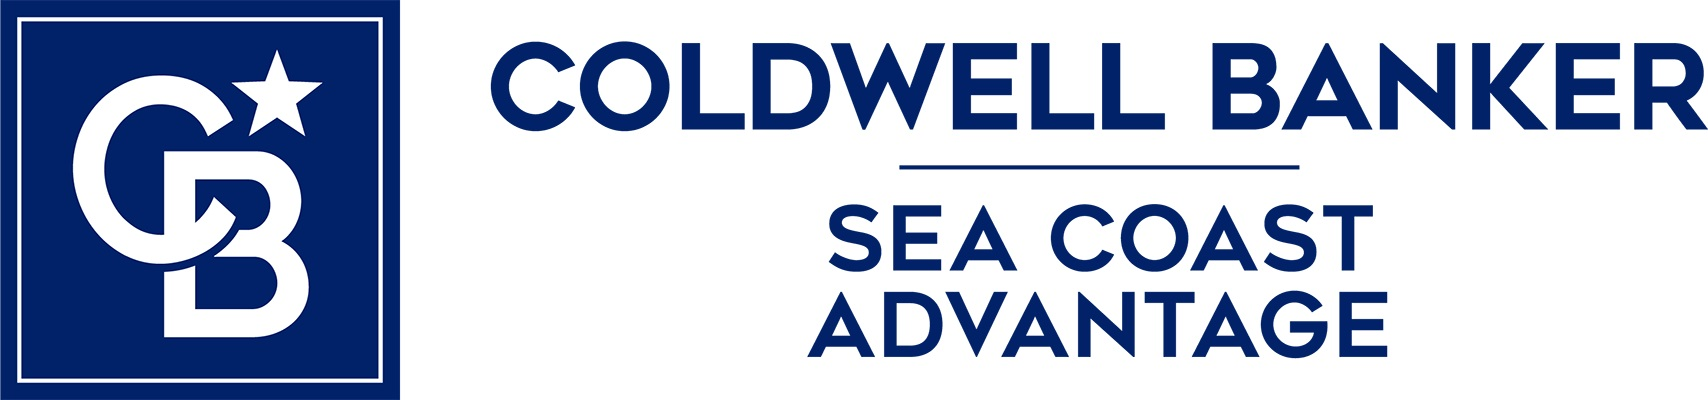 Brad Jones - Coldwell Banker Sea Coast Advantage Realty Logo